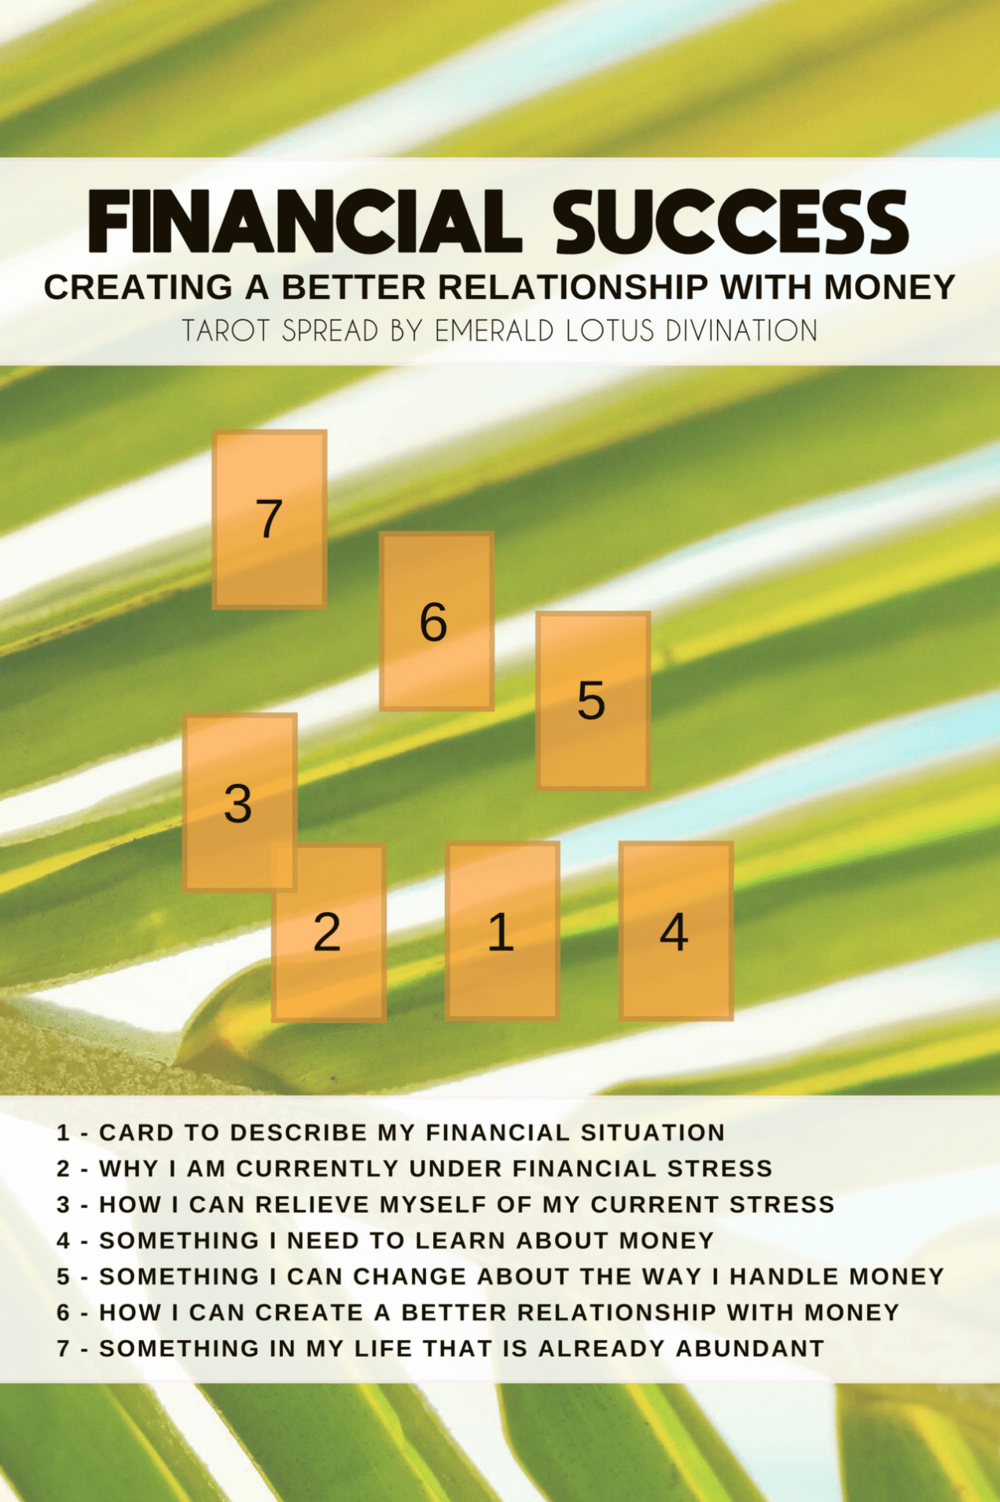 Creating a Better Relationship with Money - I have created quite a few spreads about the law of attraction, abundance, and manifesting but I don't think I've ever created a spread with specific words like Money or Finances. There is a reason for this!Instead of always focusing on the fact that you don't have enough money, I want my spreads to help you envision more of what you DO want in your life.When I first created this tarot spread I called it 'financial stress' only to realize that's just fueling the fire of having stress in your relationship with money. Instead I've changed the language from STRESS to SUCCESS.The language you have regarding money, your thoughts on it, how you feel about it, what success means to you, your level of self-love & feeling deserving of financial success… all of these factors affect how money will come and go in your life.Are you ready to change your relationship with money? Book a Reading with this Spread.